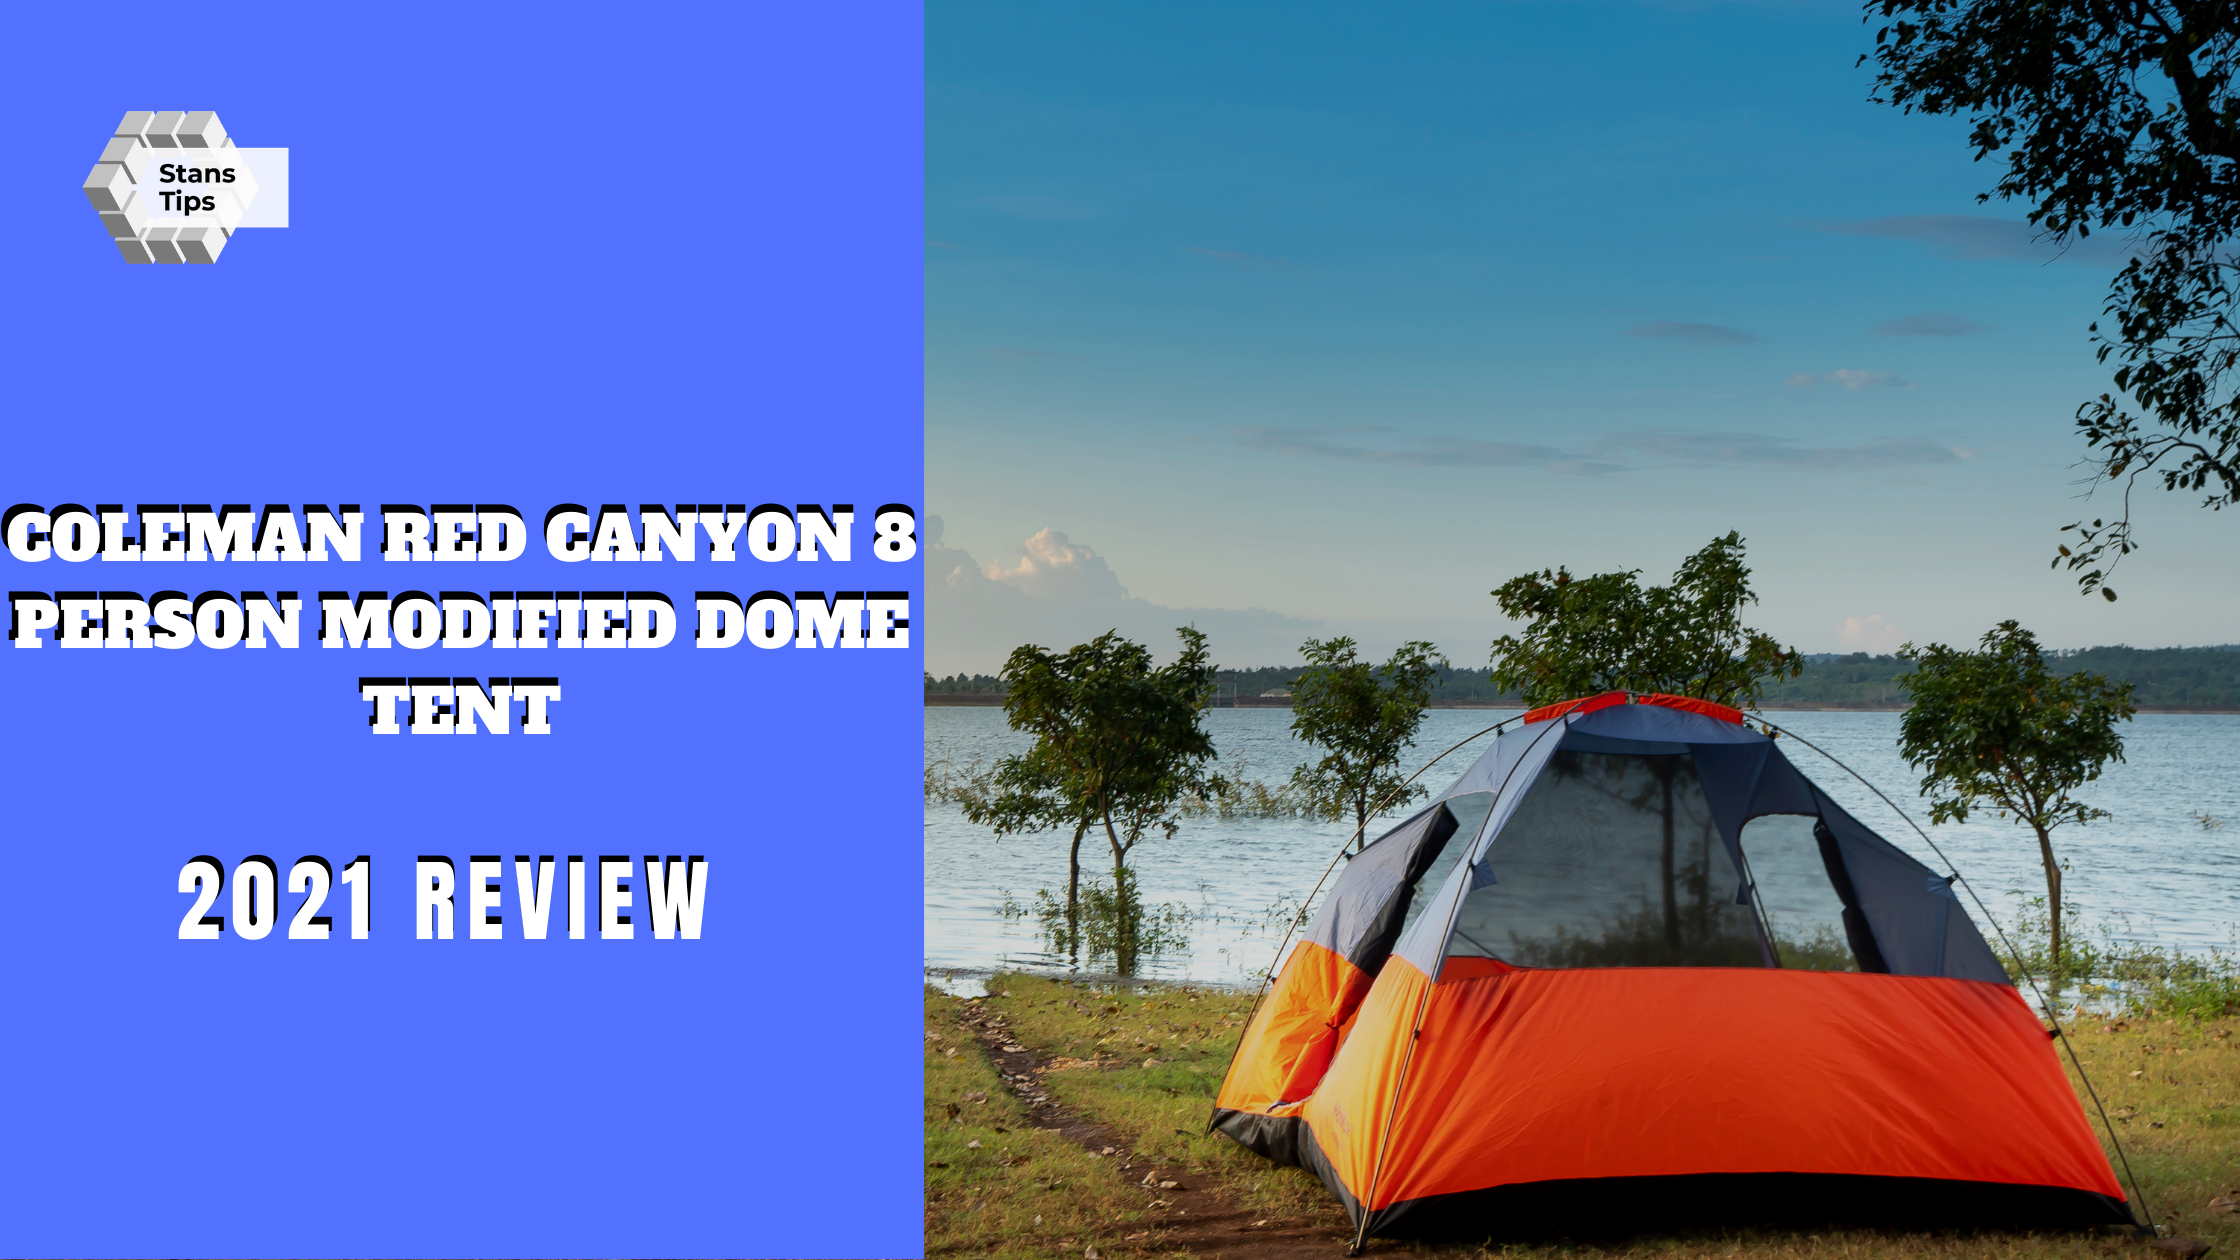 Coleman red canyon 8 person modified dome tent review